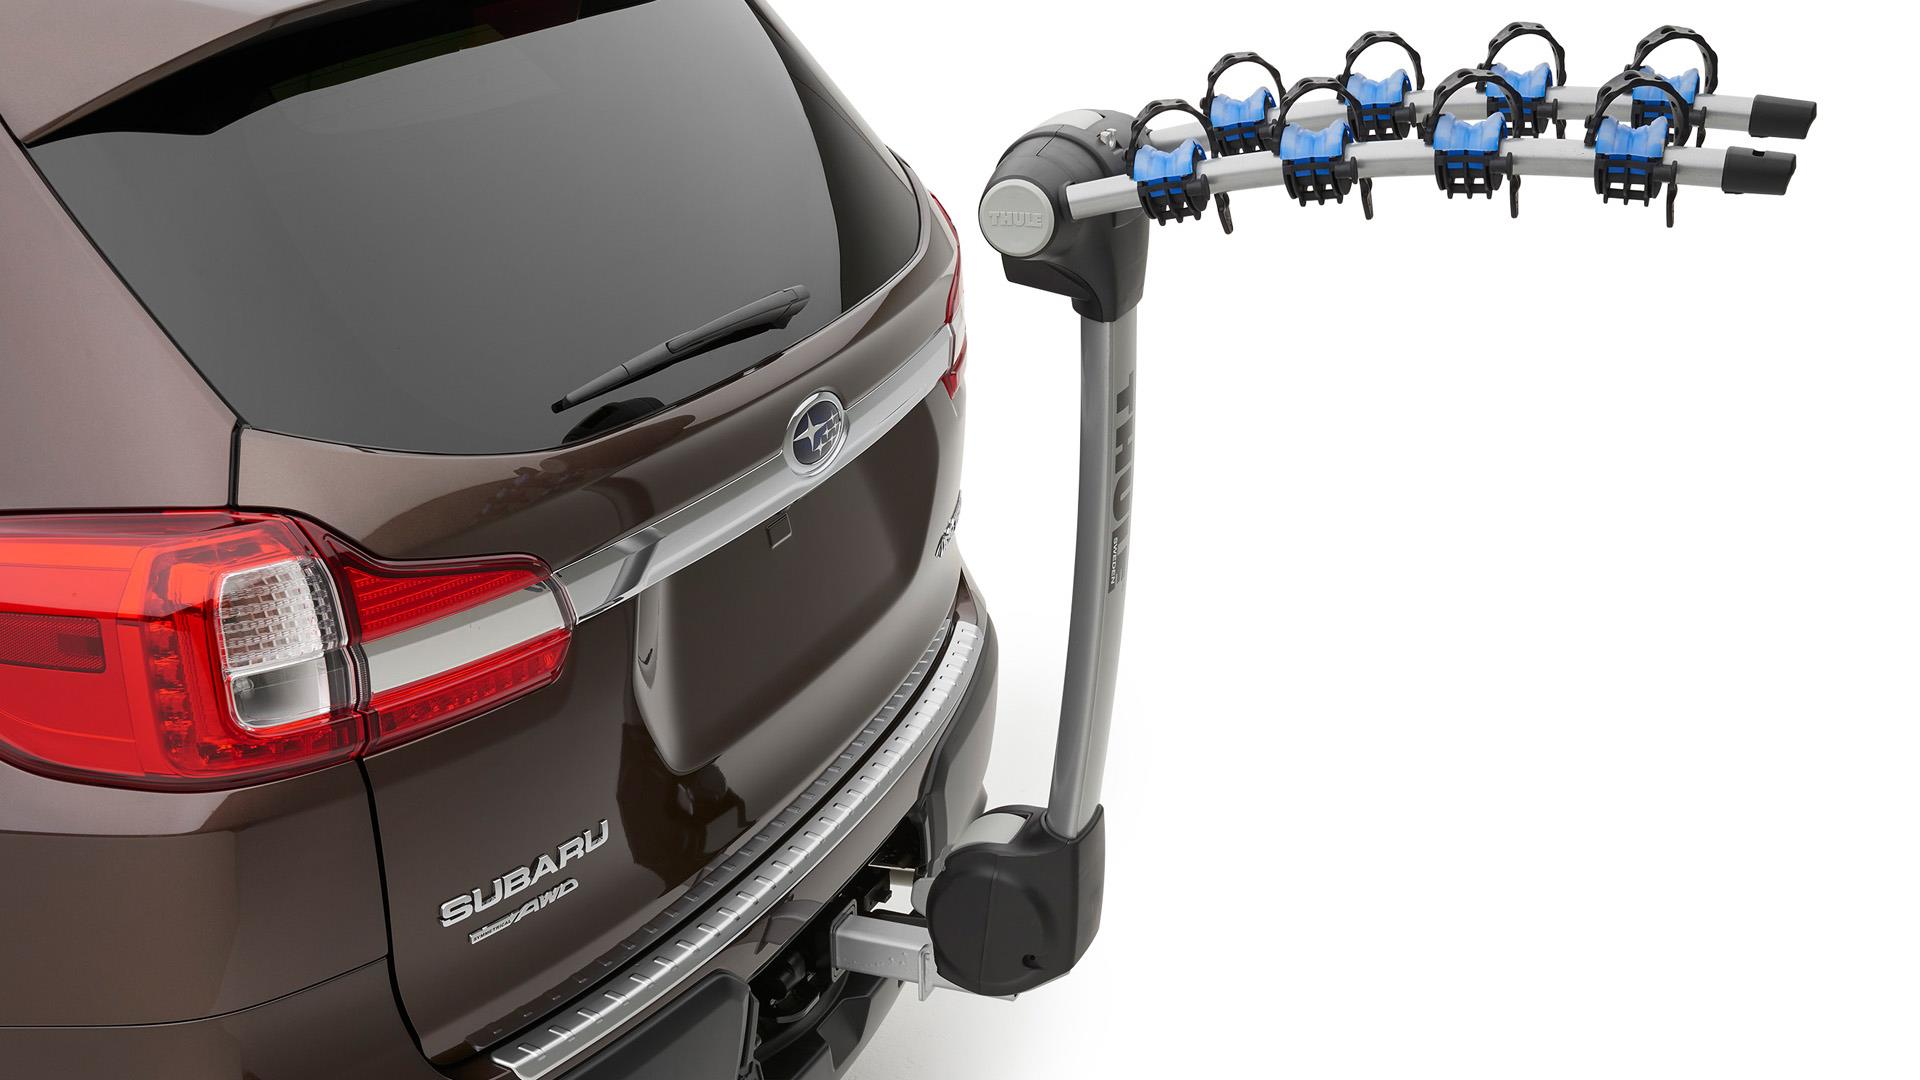 Thule Bike Carrier - Hitch Mounted (4 Bike) ON BACKORDER, CONTACT FOR AVAILABILITY - Subaru (SOA567B051)